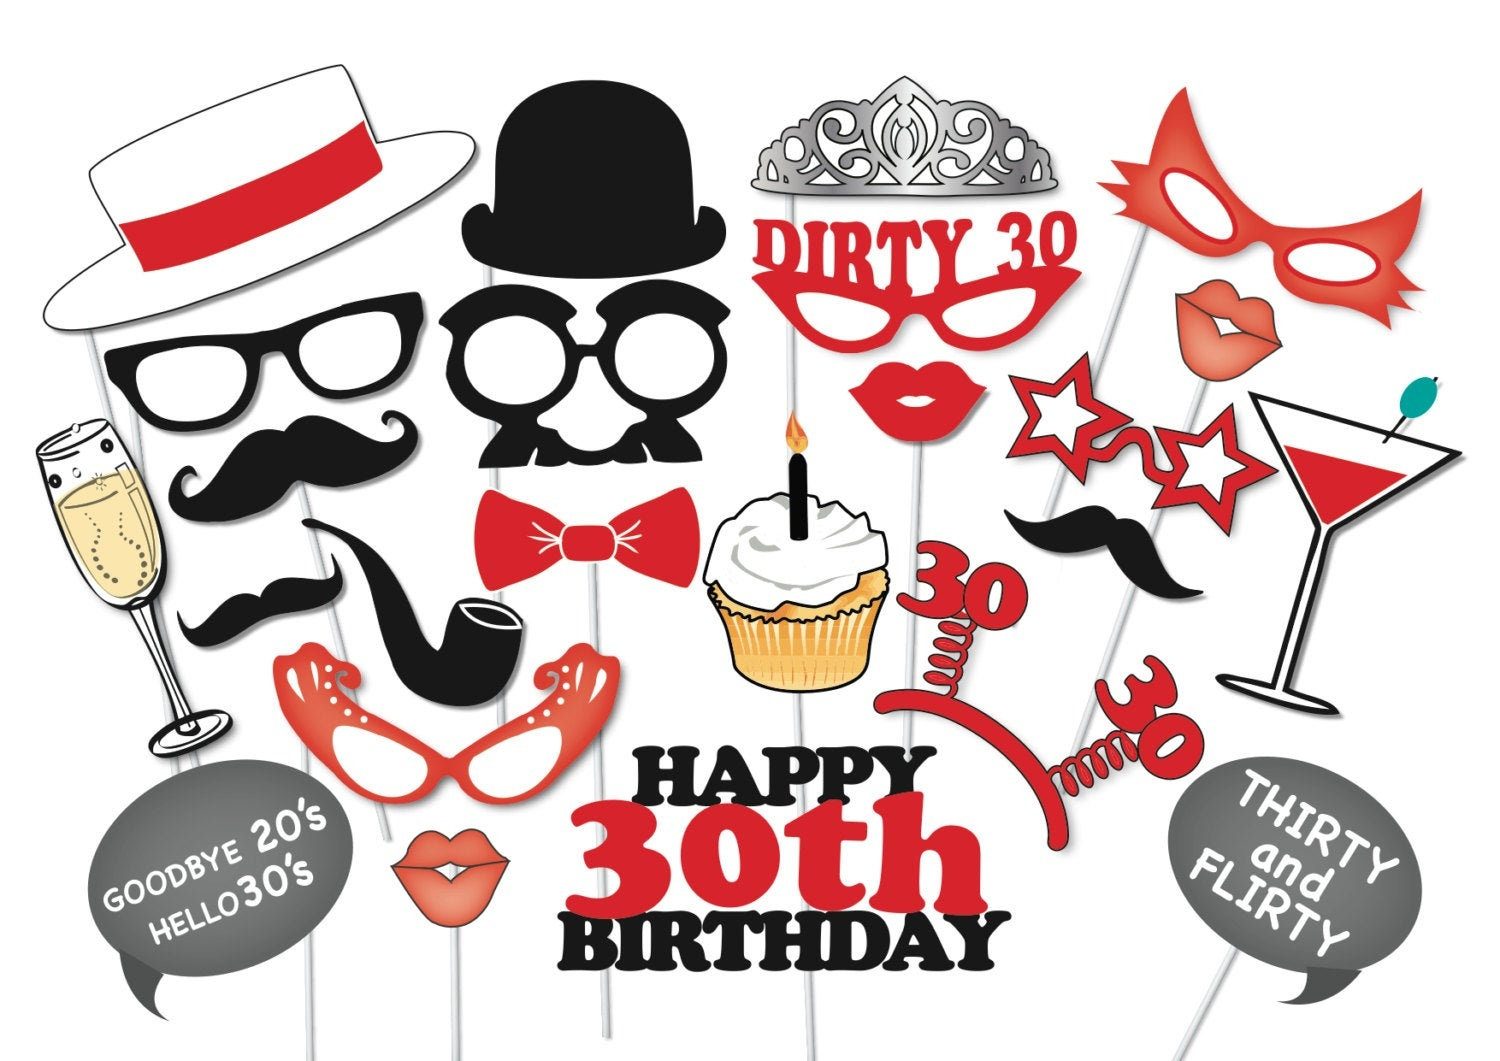 30Th Birthday Photobooth Party Props Set 26 Piece Printable | Etsy - Free Printable 30Th Birthday Photo Booth Props